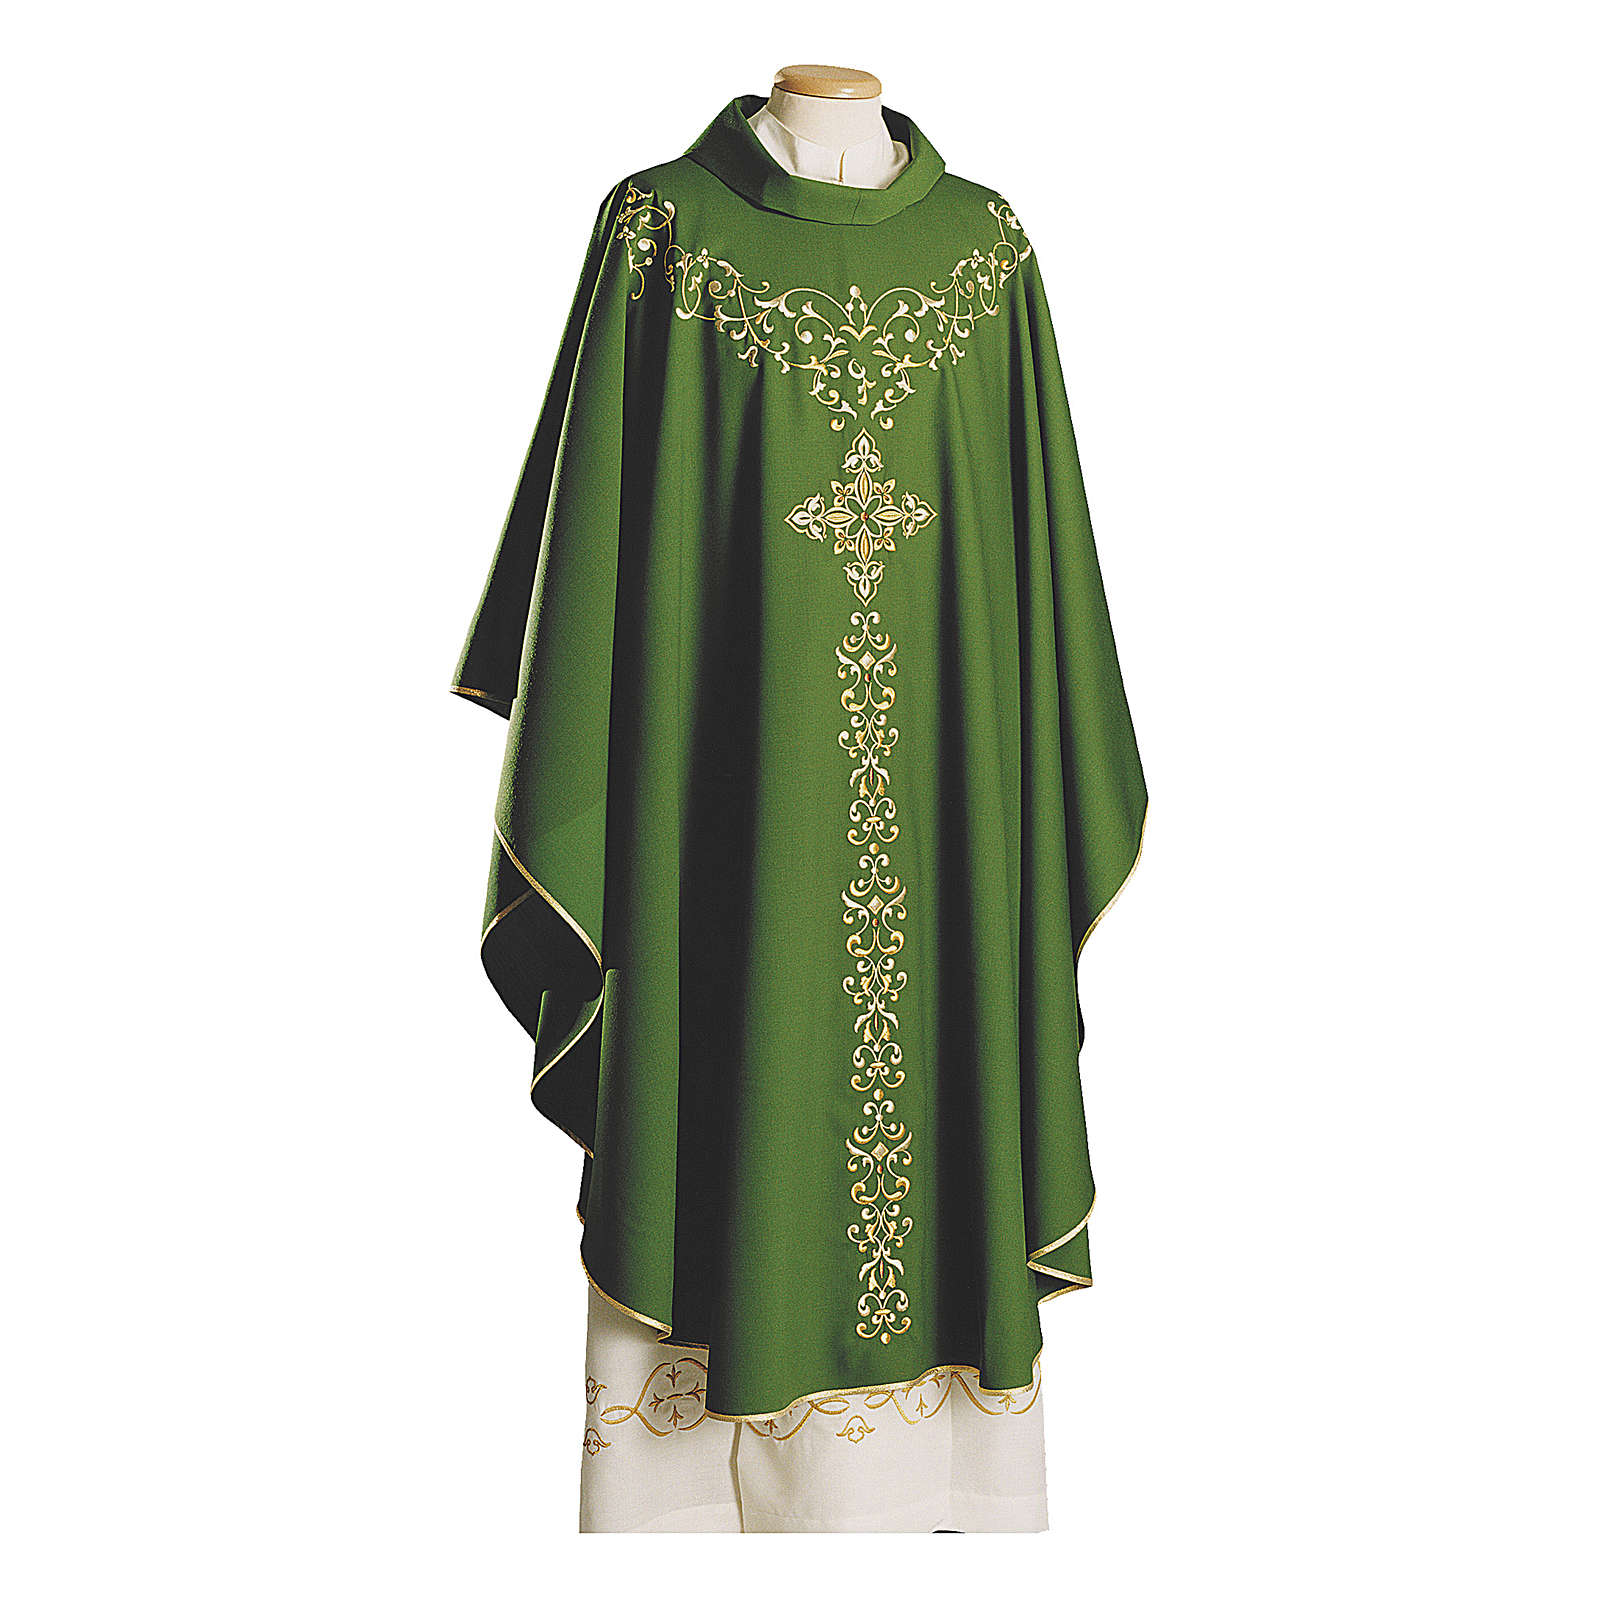 Monastic Chasuble in pure wool with embroidery on the front 4